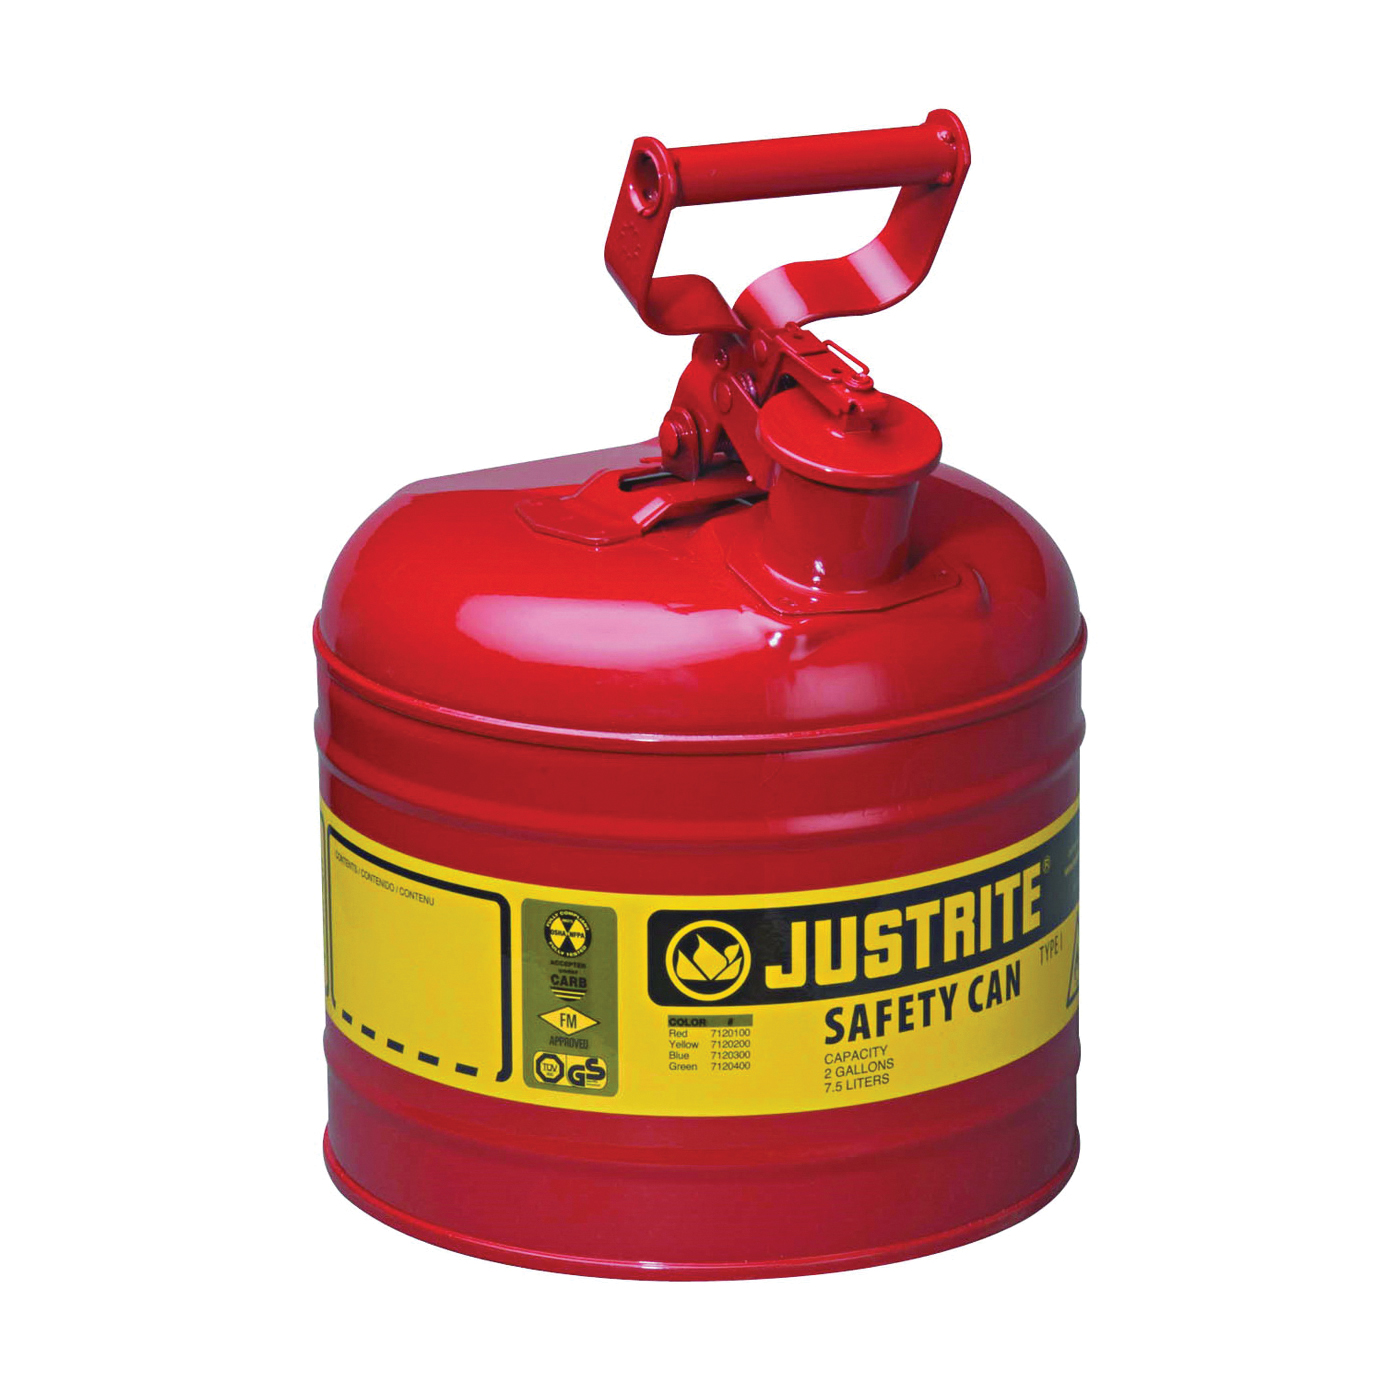 Picture of JUSTRITE 7120100 Safety Can, 2 gal Capacity, Steel, Red